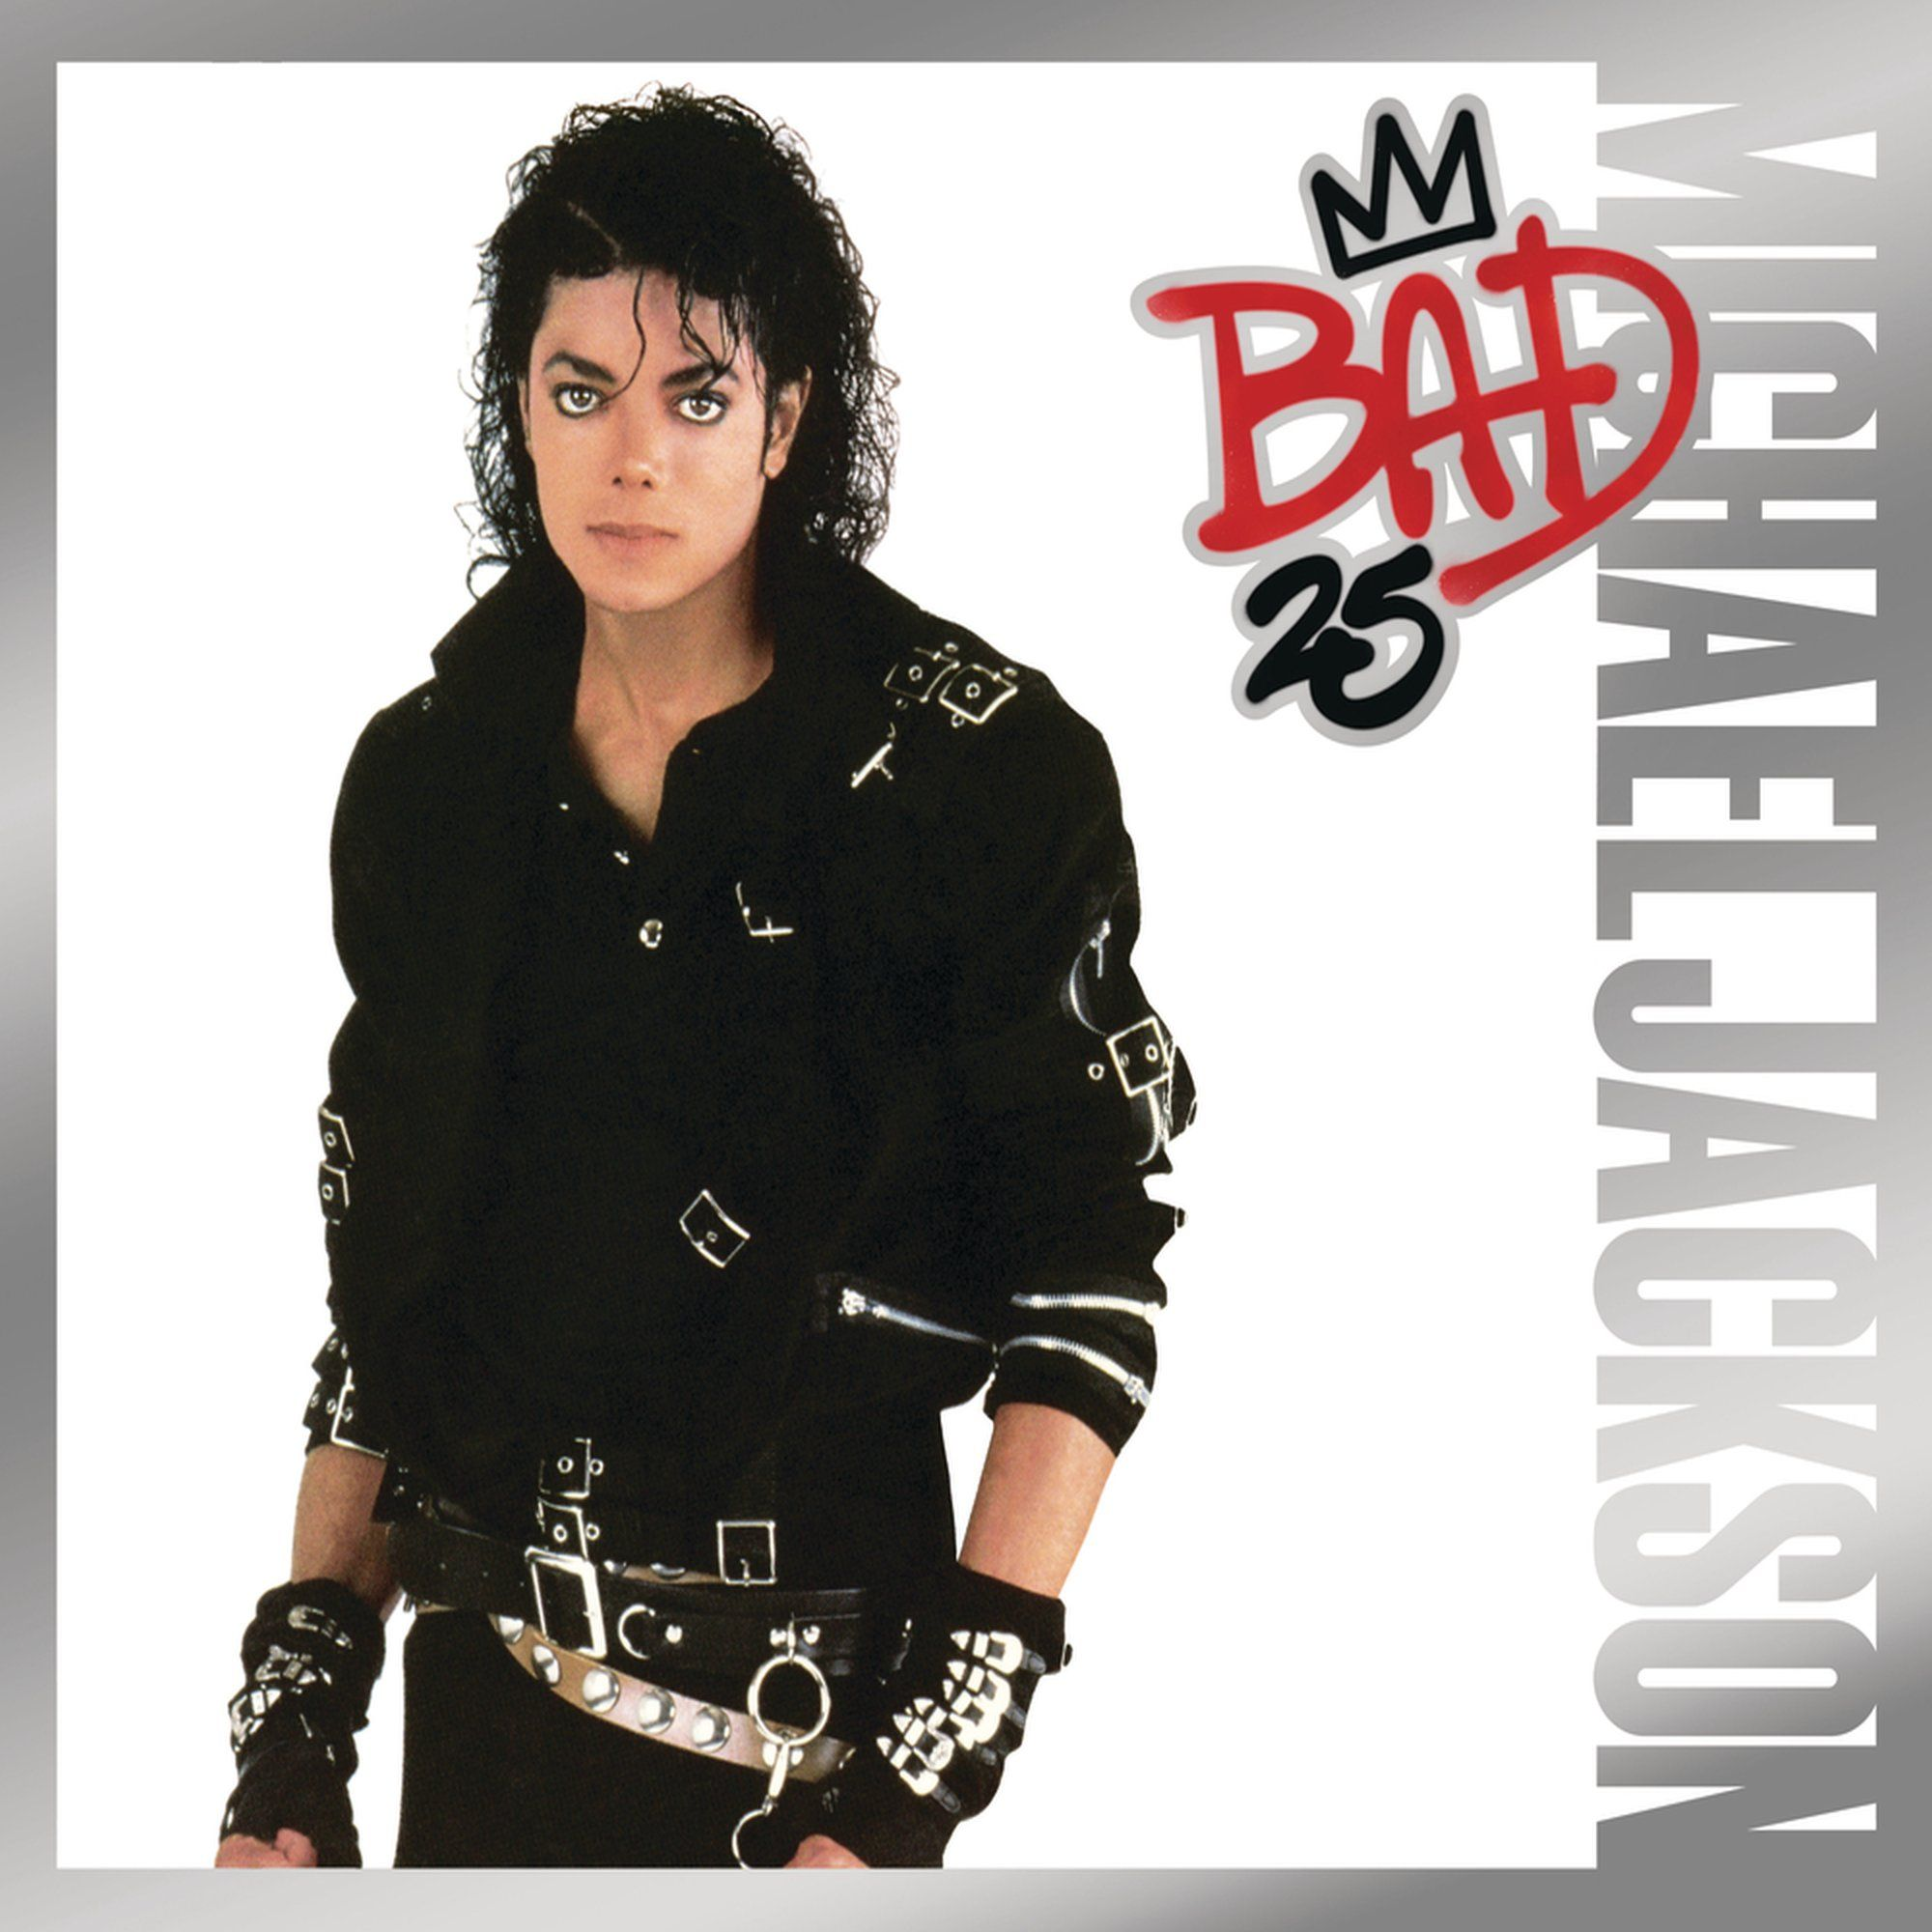 Michael Jackson - Bad 25 album cover